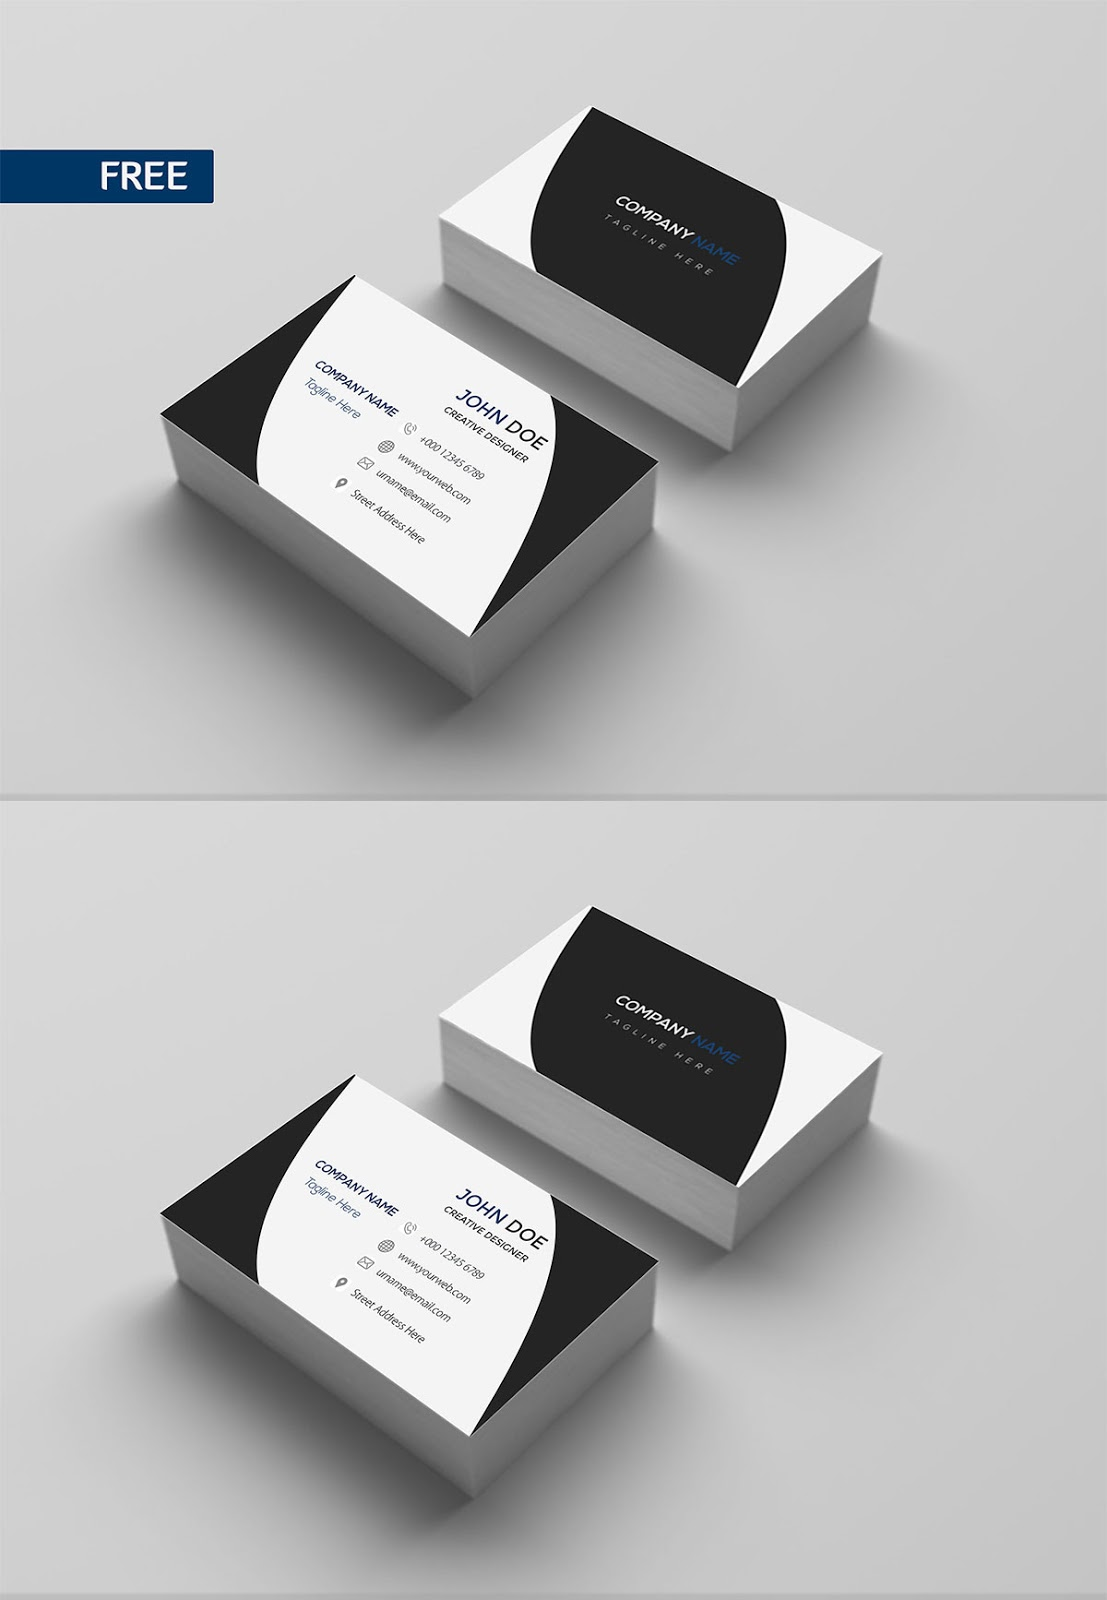 Free Download Print Design Business Card Template PSD ...